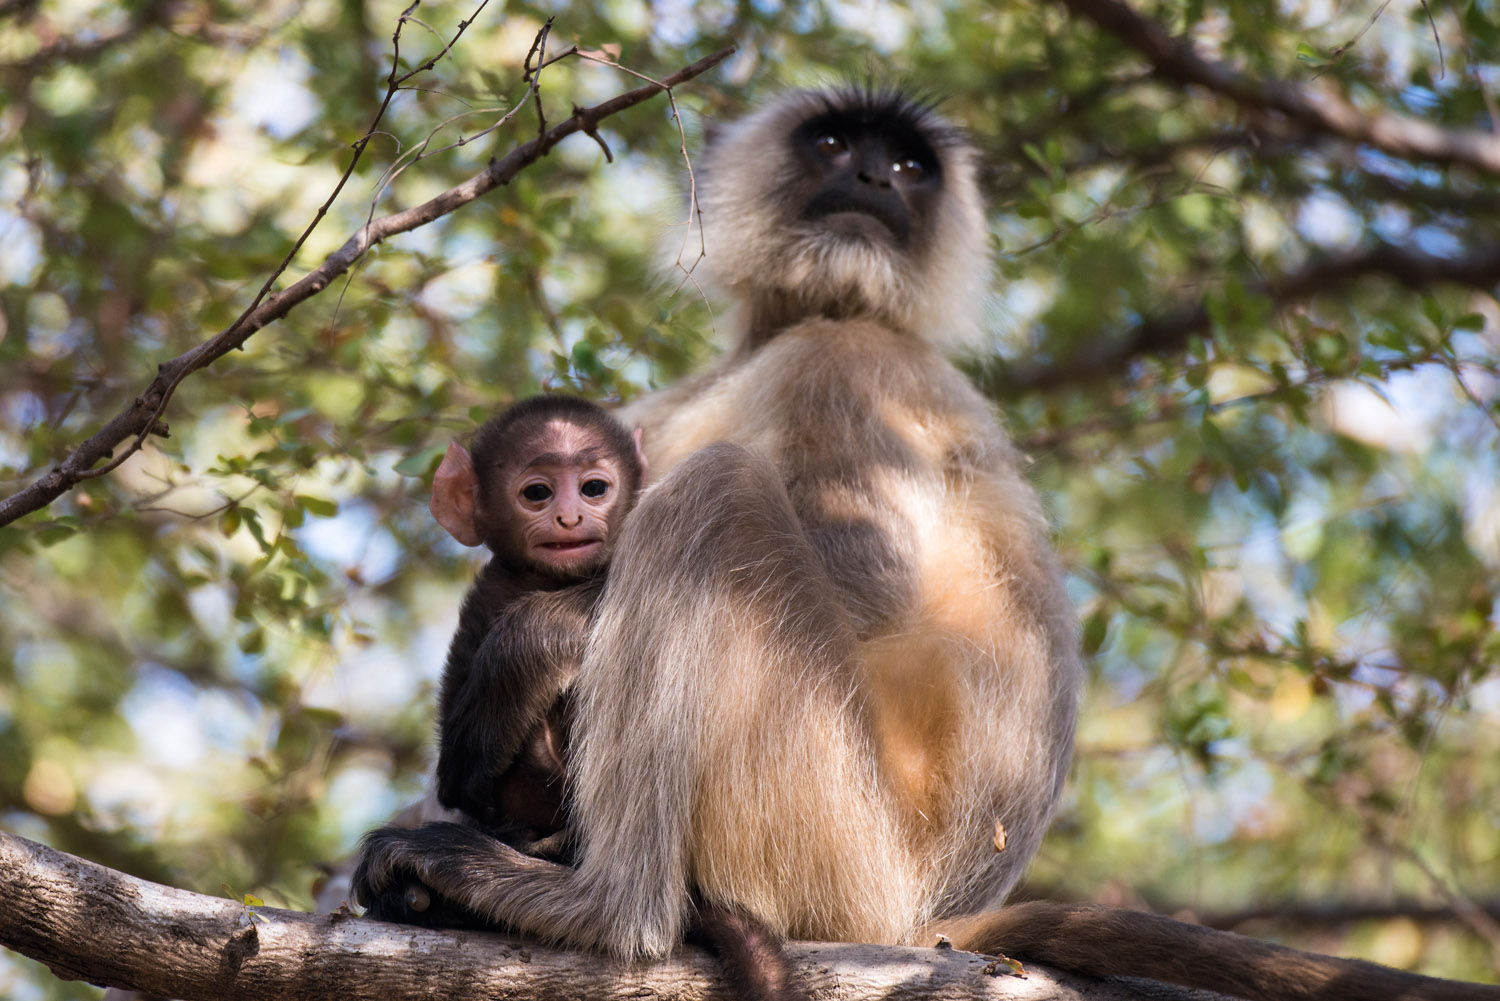 Hanuman langur monkey mother with baby, Ranthambhore National Park, Rajasthan, India